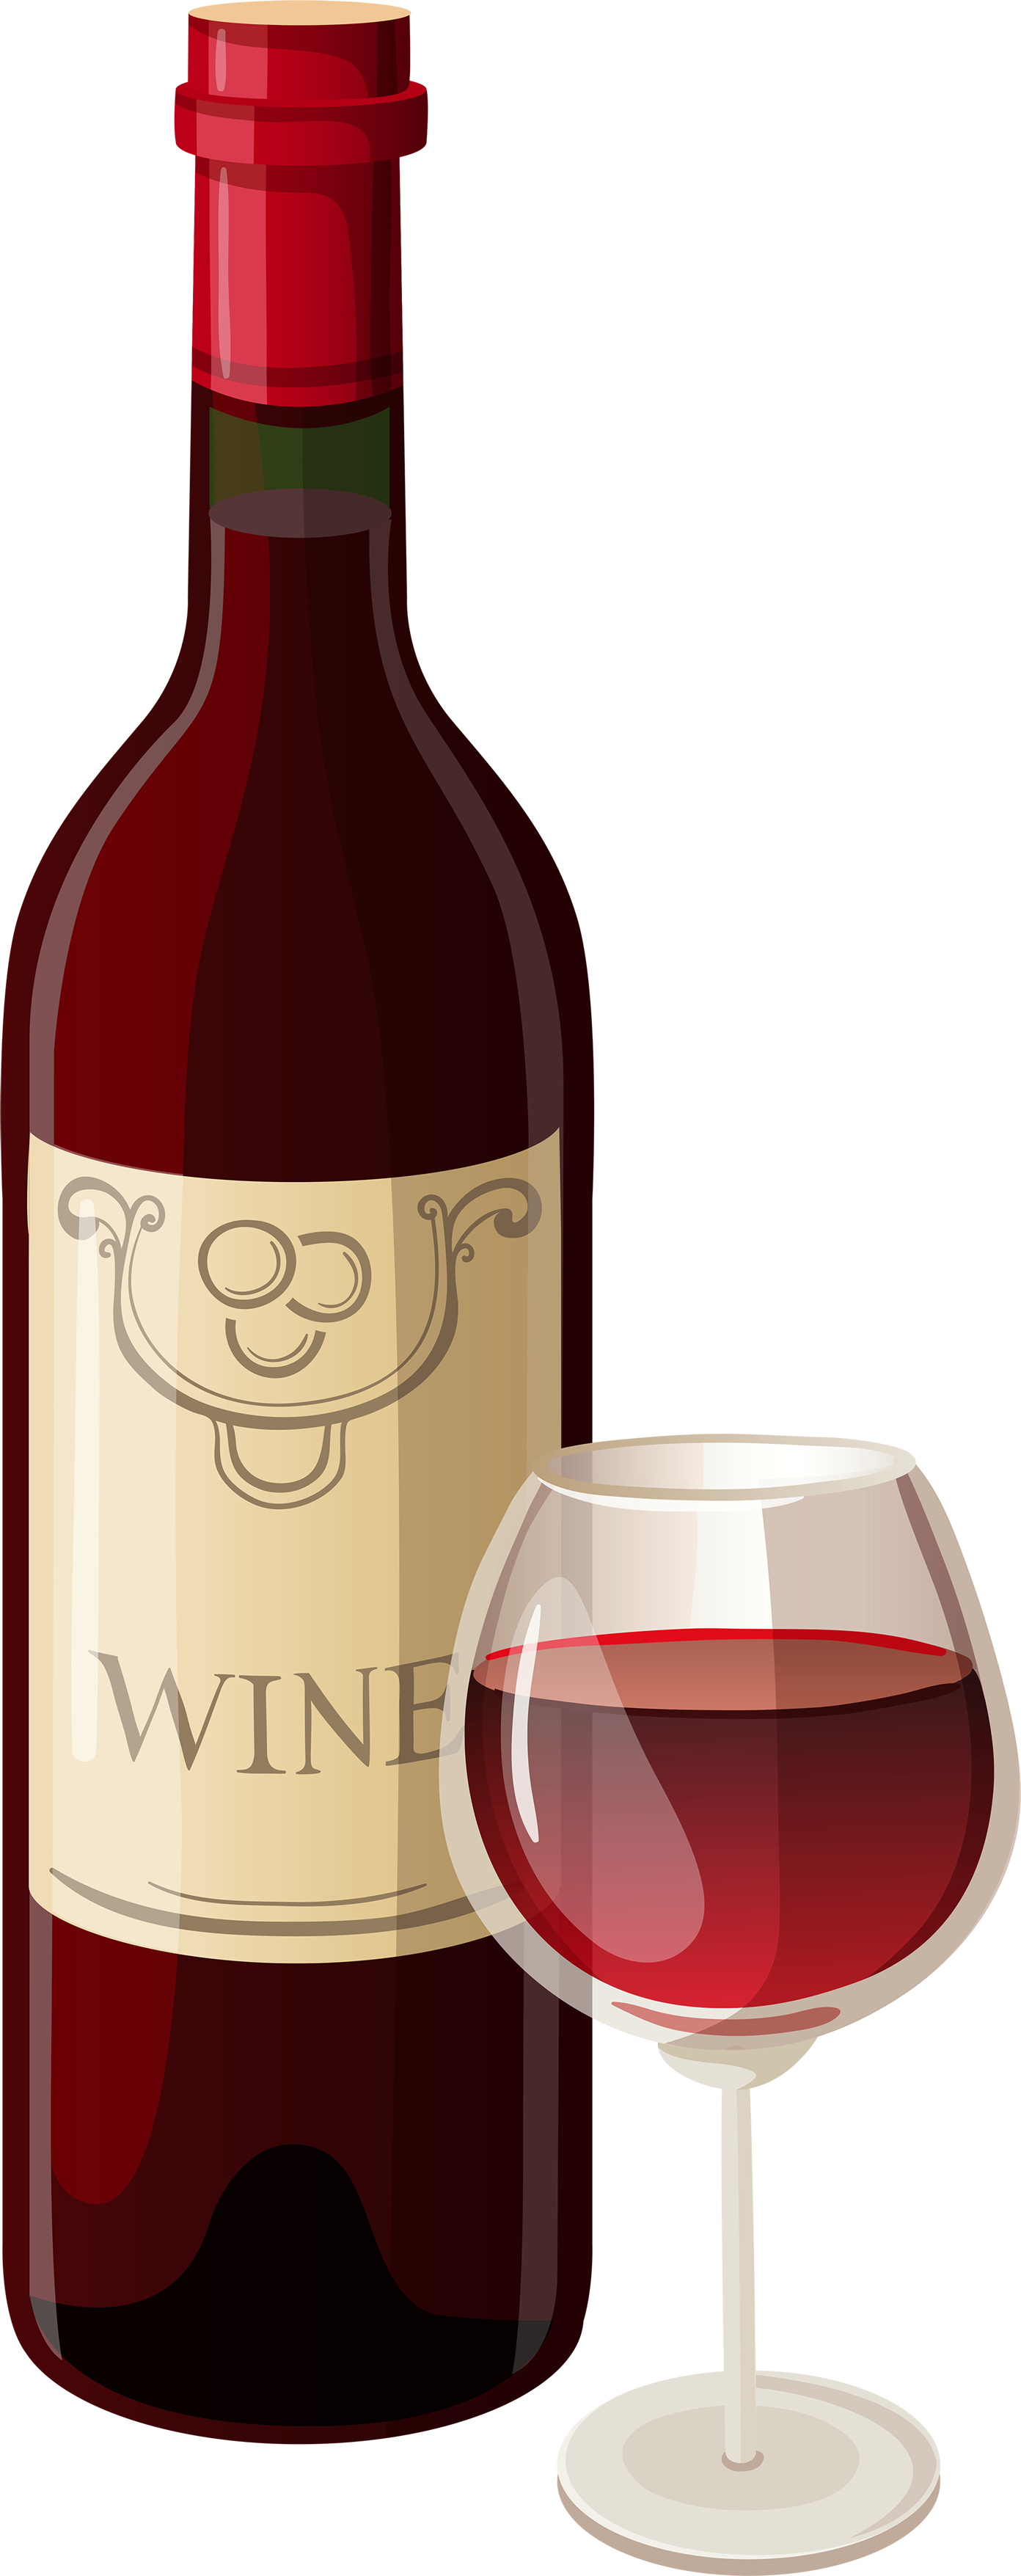 Wine bottle clipart png. Image result for and